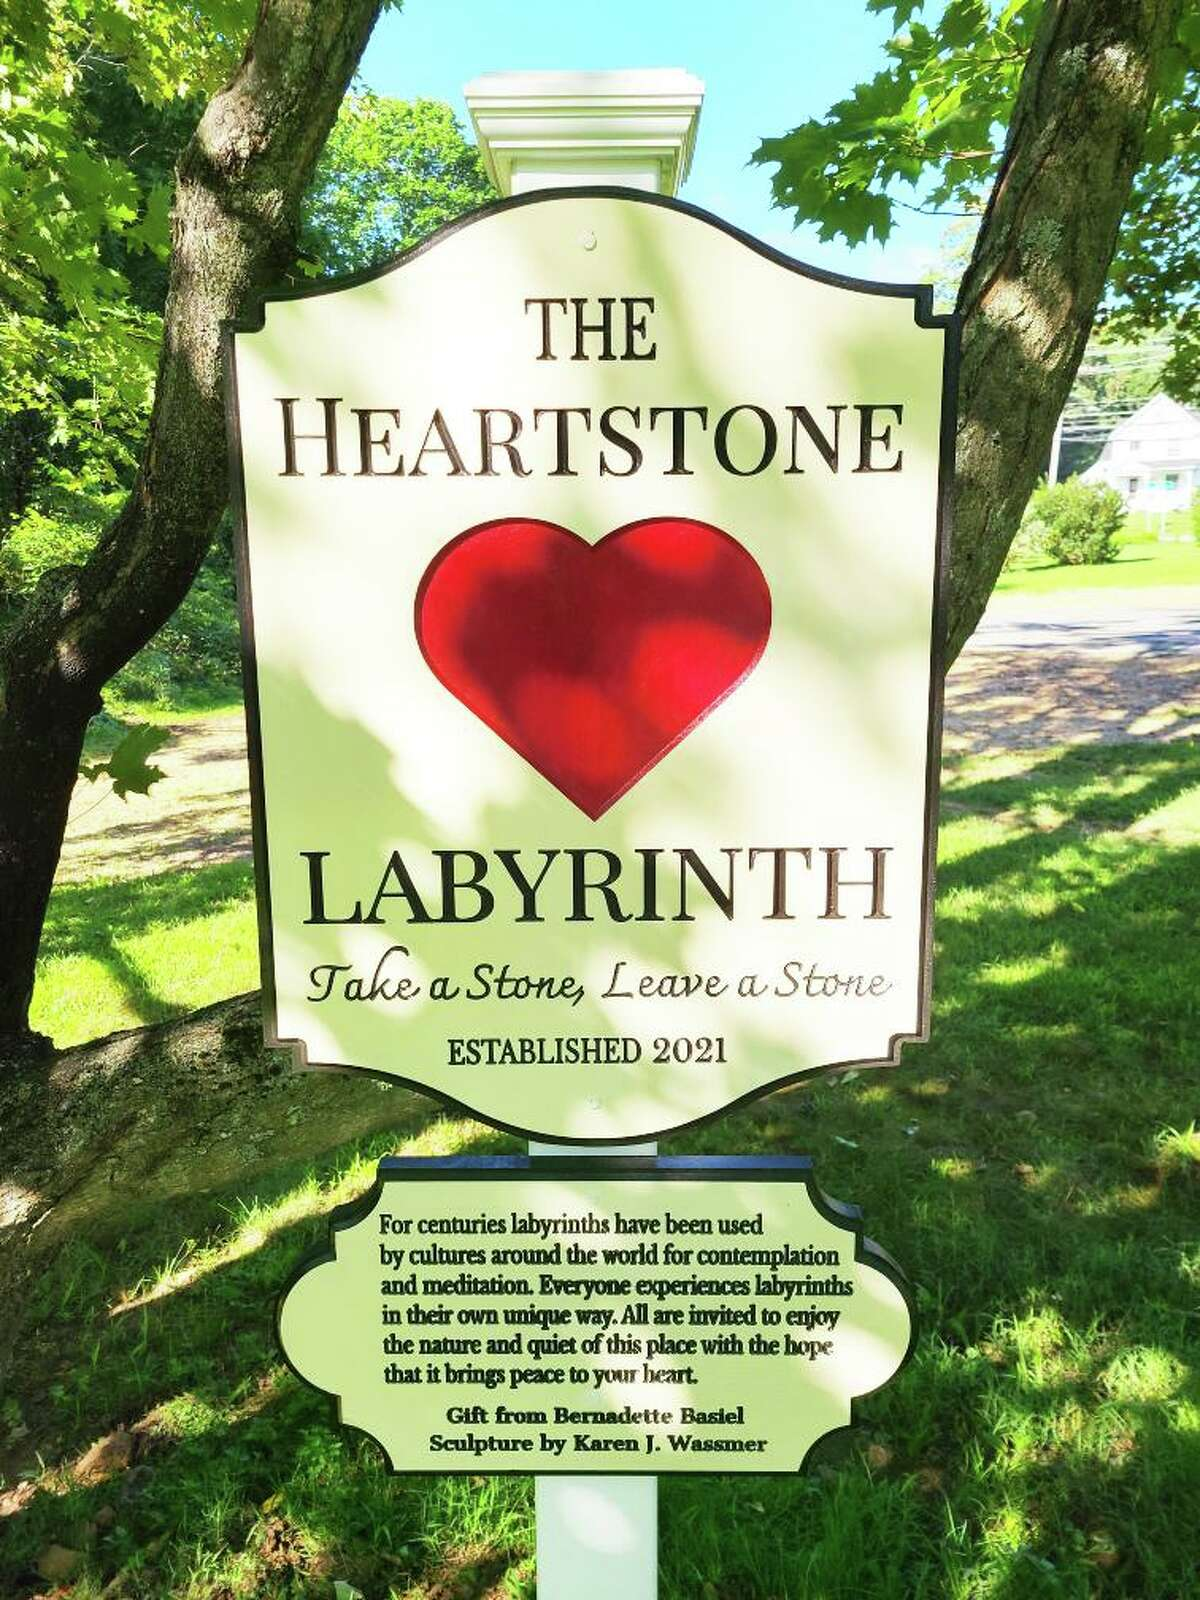 The official unveiling of The Heartstone Labyrinth will take place Aug. 28 from 10 a.m. to noon at the Levi Coe Library.